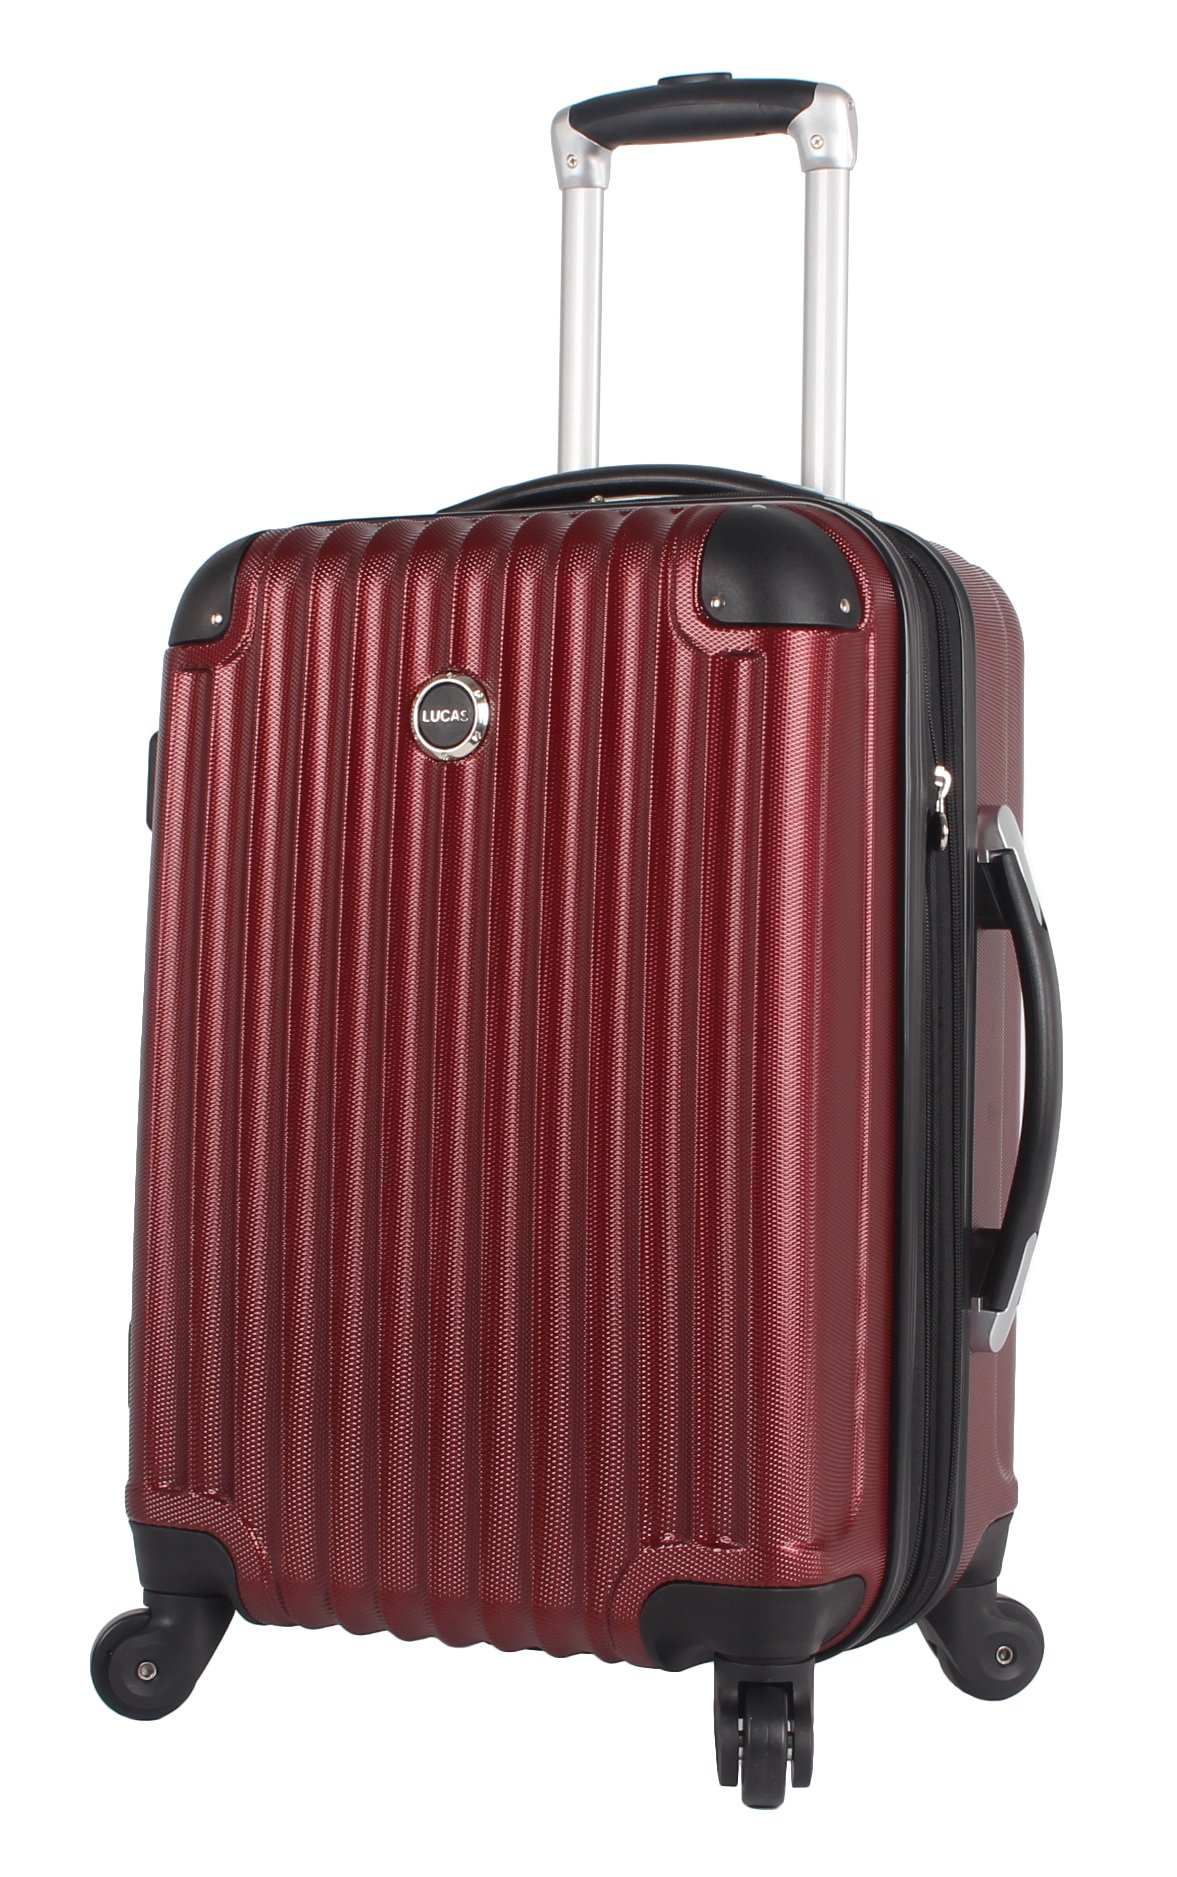 Lucas Outlander 20 Inch Carry On Luggage Collection -Expandable Scratch Resistant (ABS + PC) Hardside Suitcase- Lightweight Durable Checked Bag With 4-Rolling Spinner Wheels (20in, Burgundy)